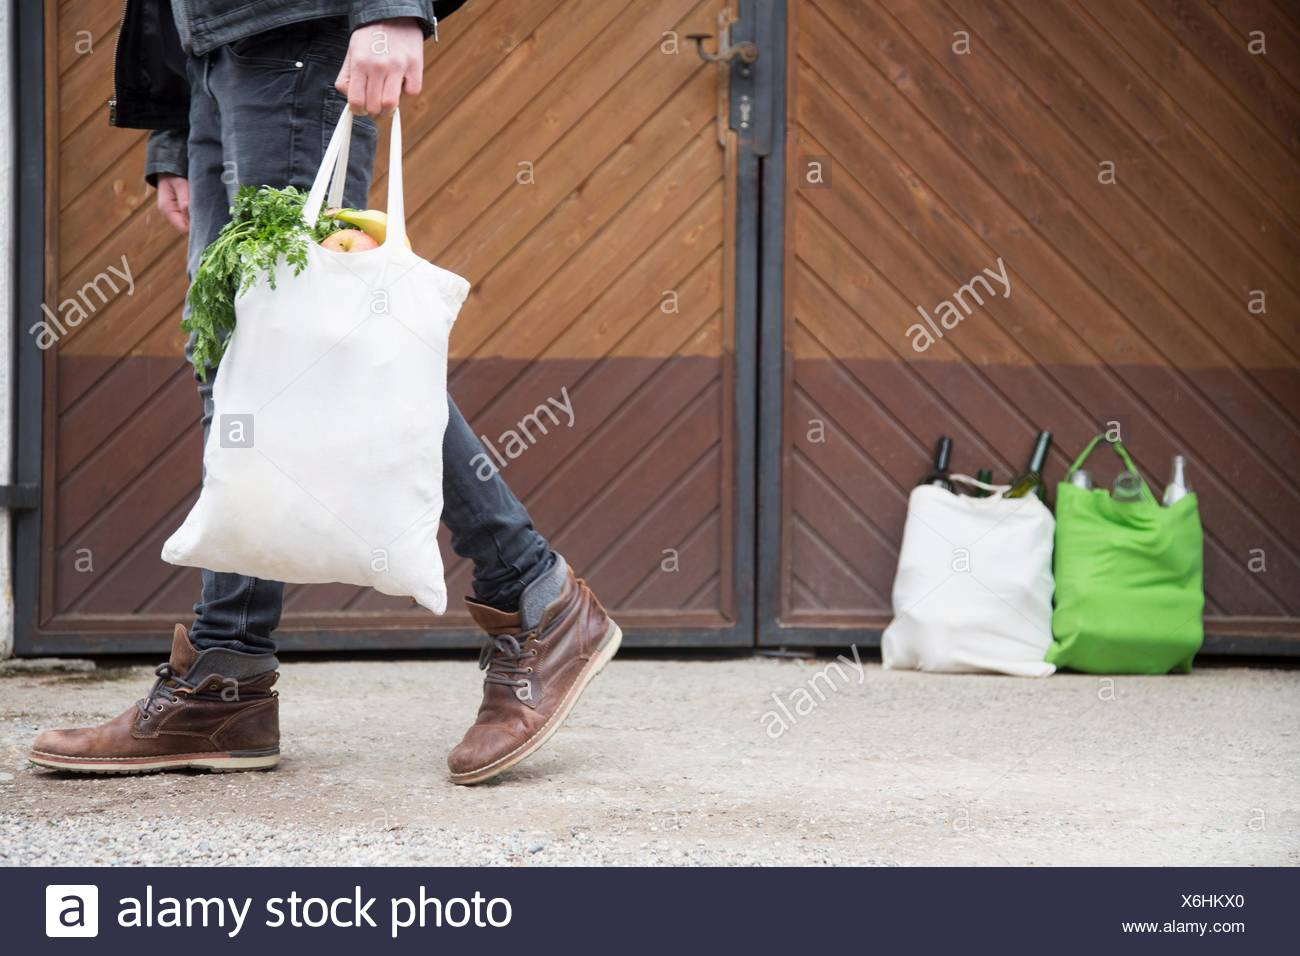 Teenage boy carrying reusable shopping bag full of fruit and veg, with bottles for recycling in yard - Stock Image